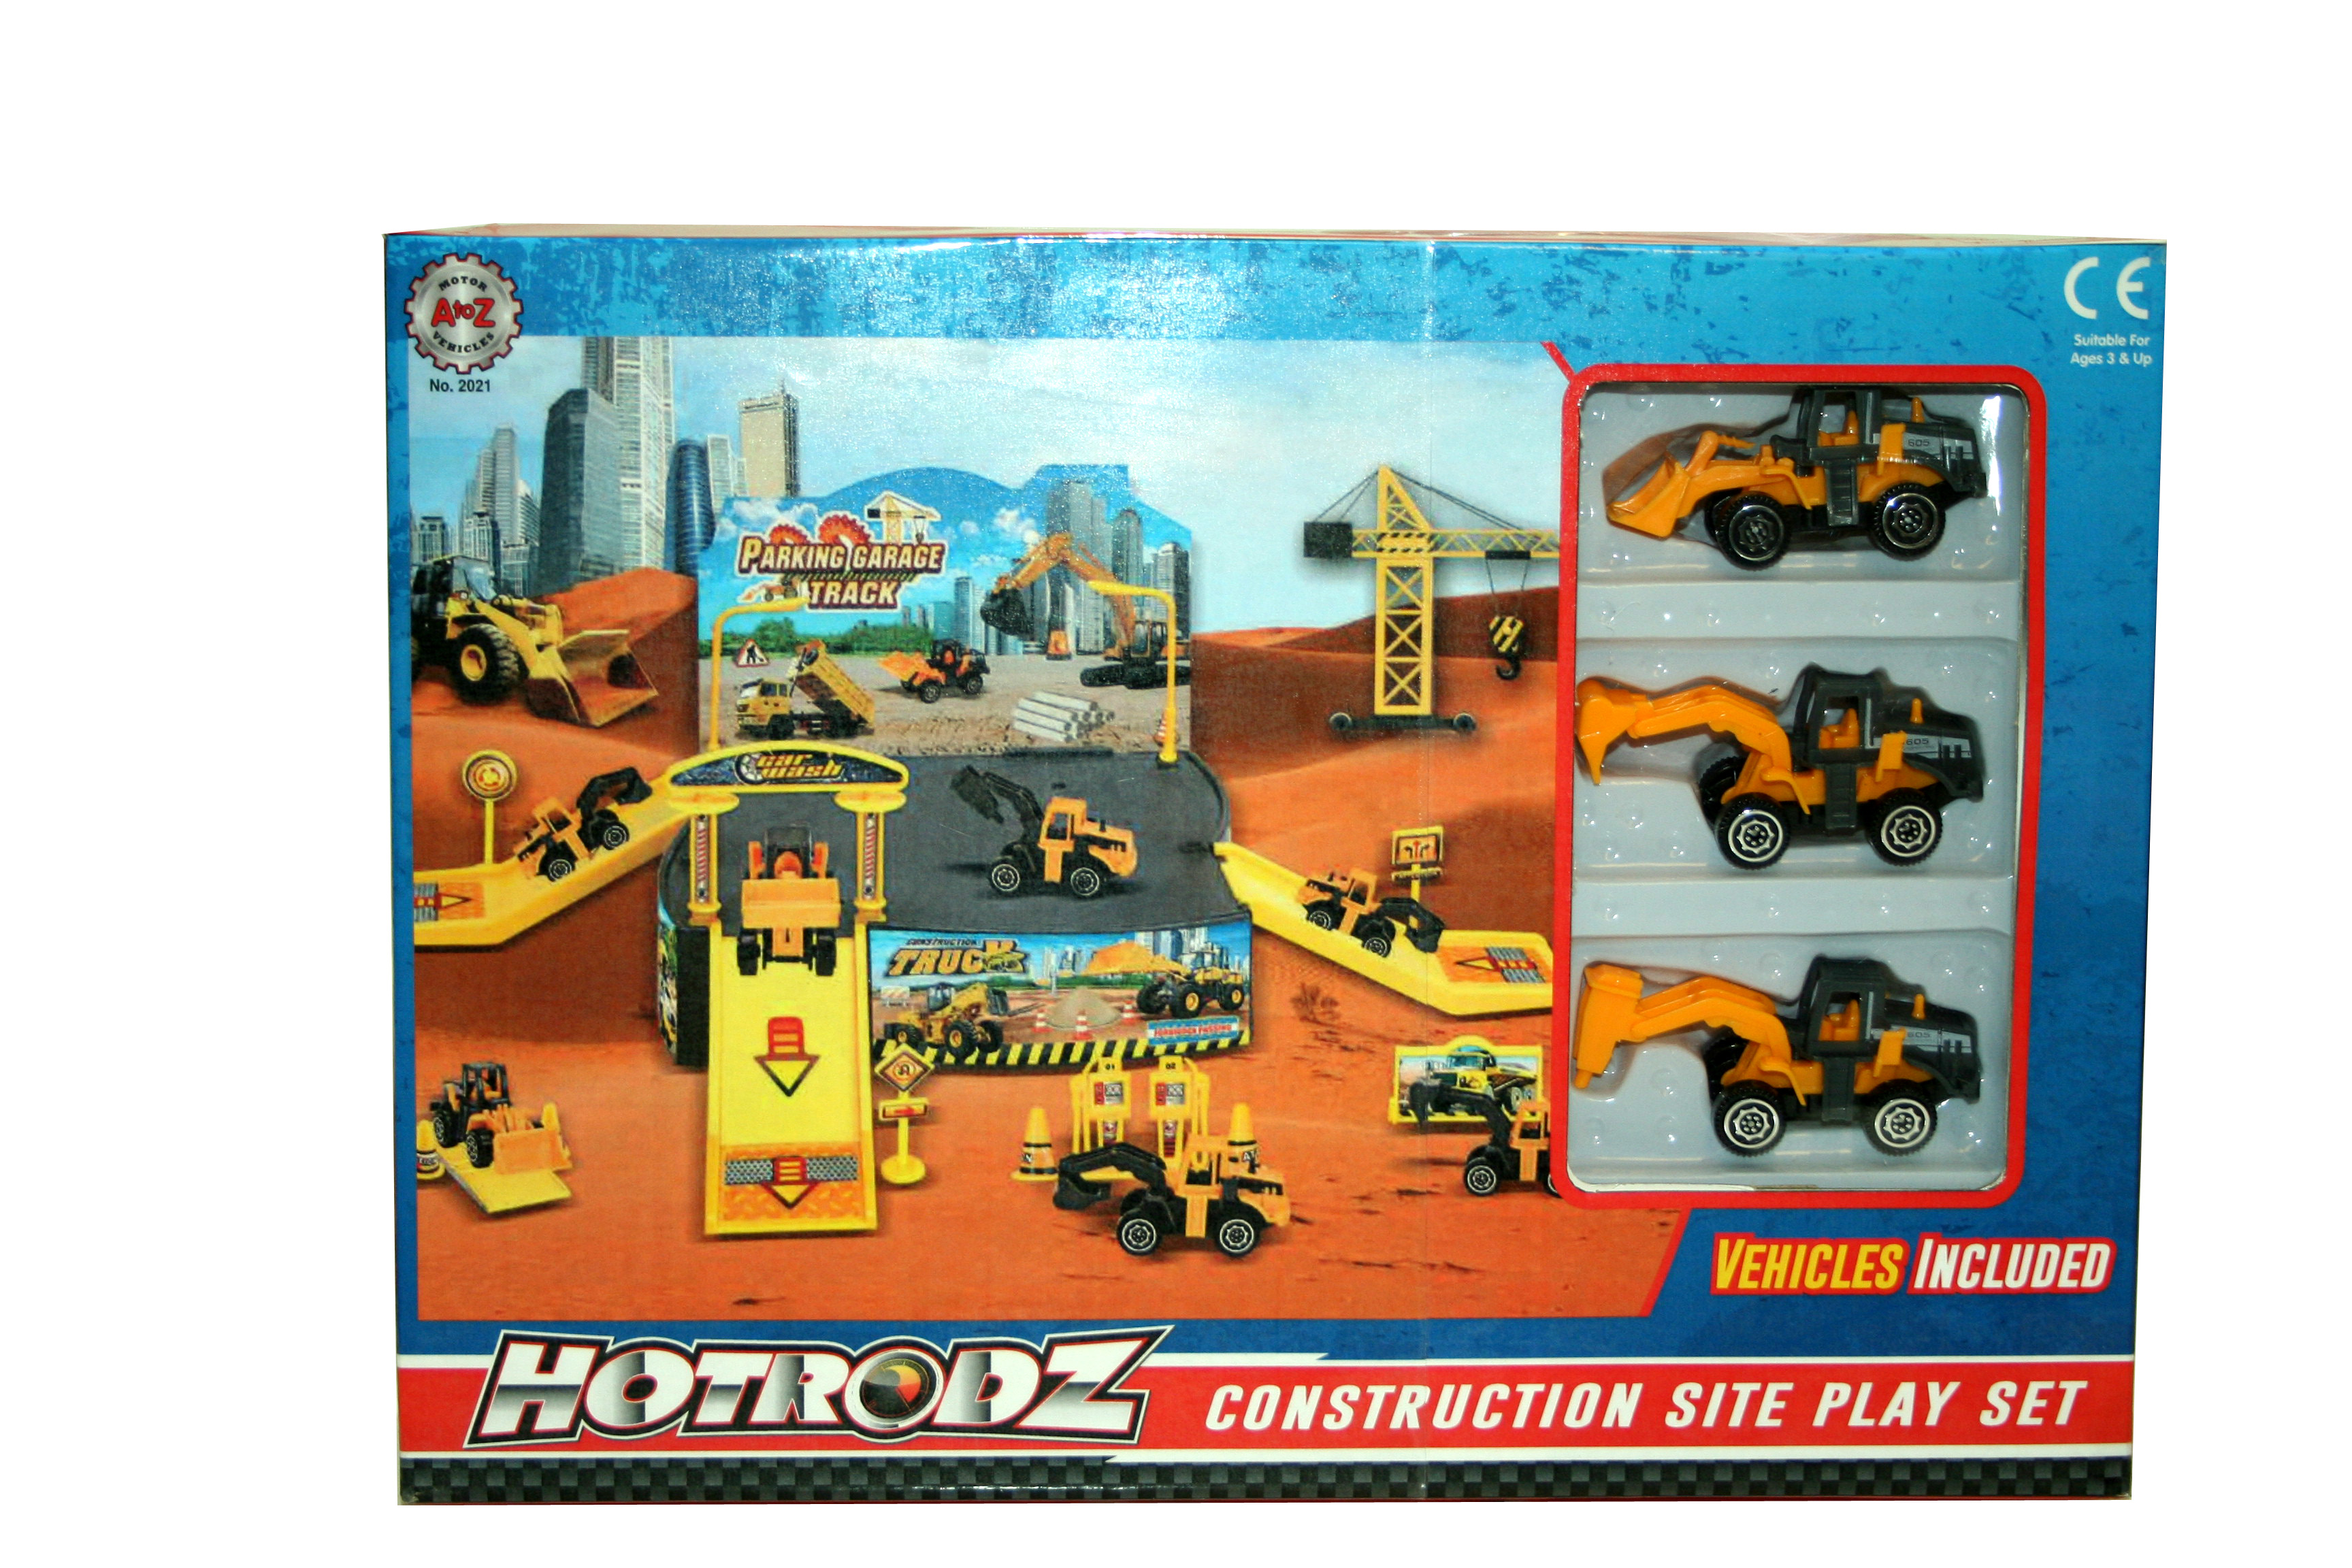 A-Z Construction Site Play Set